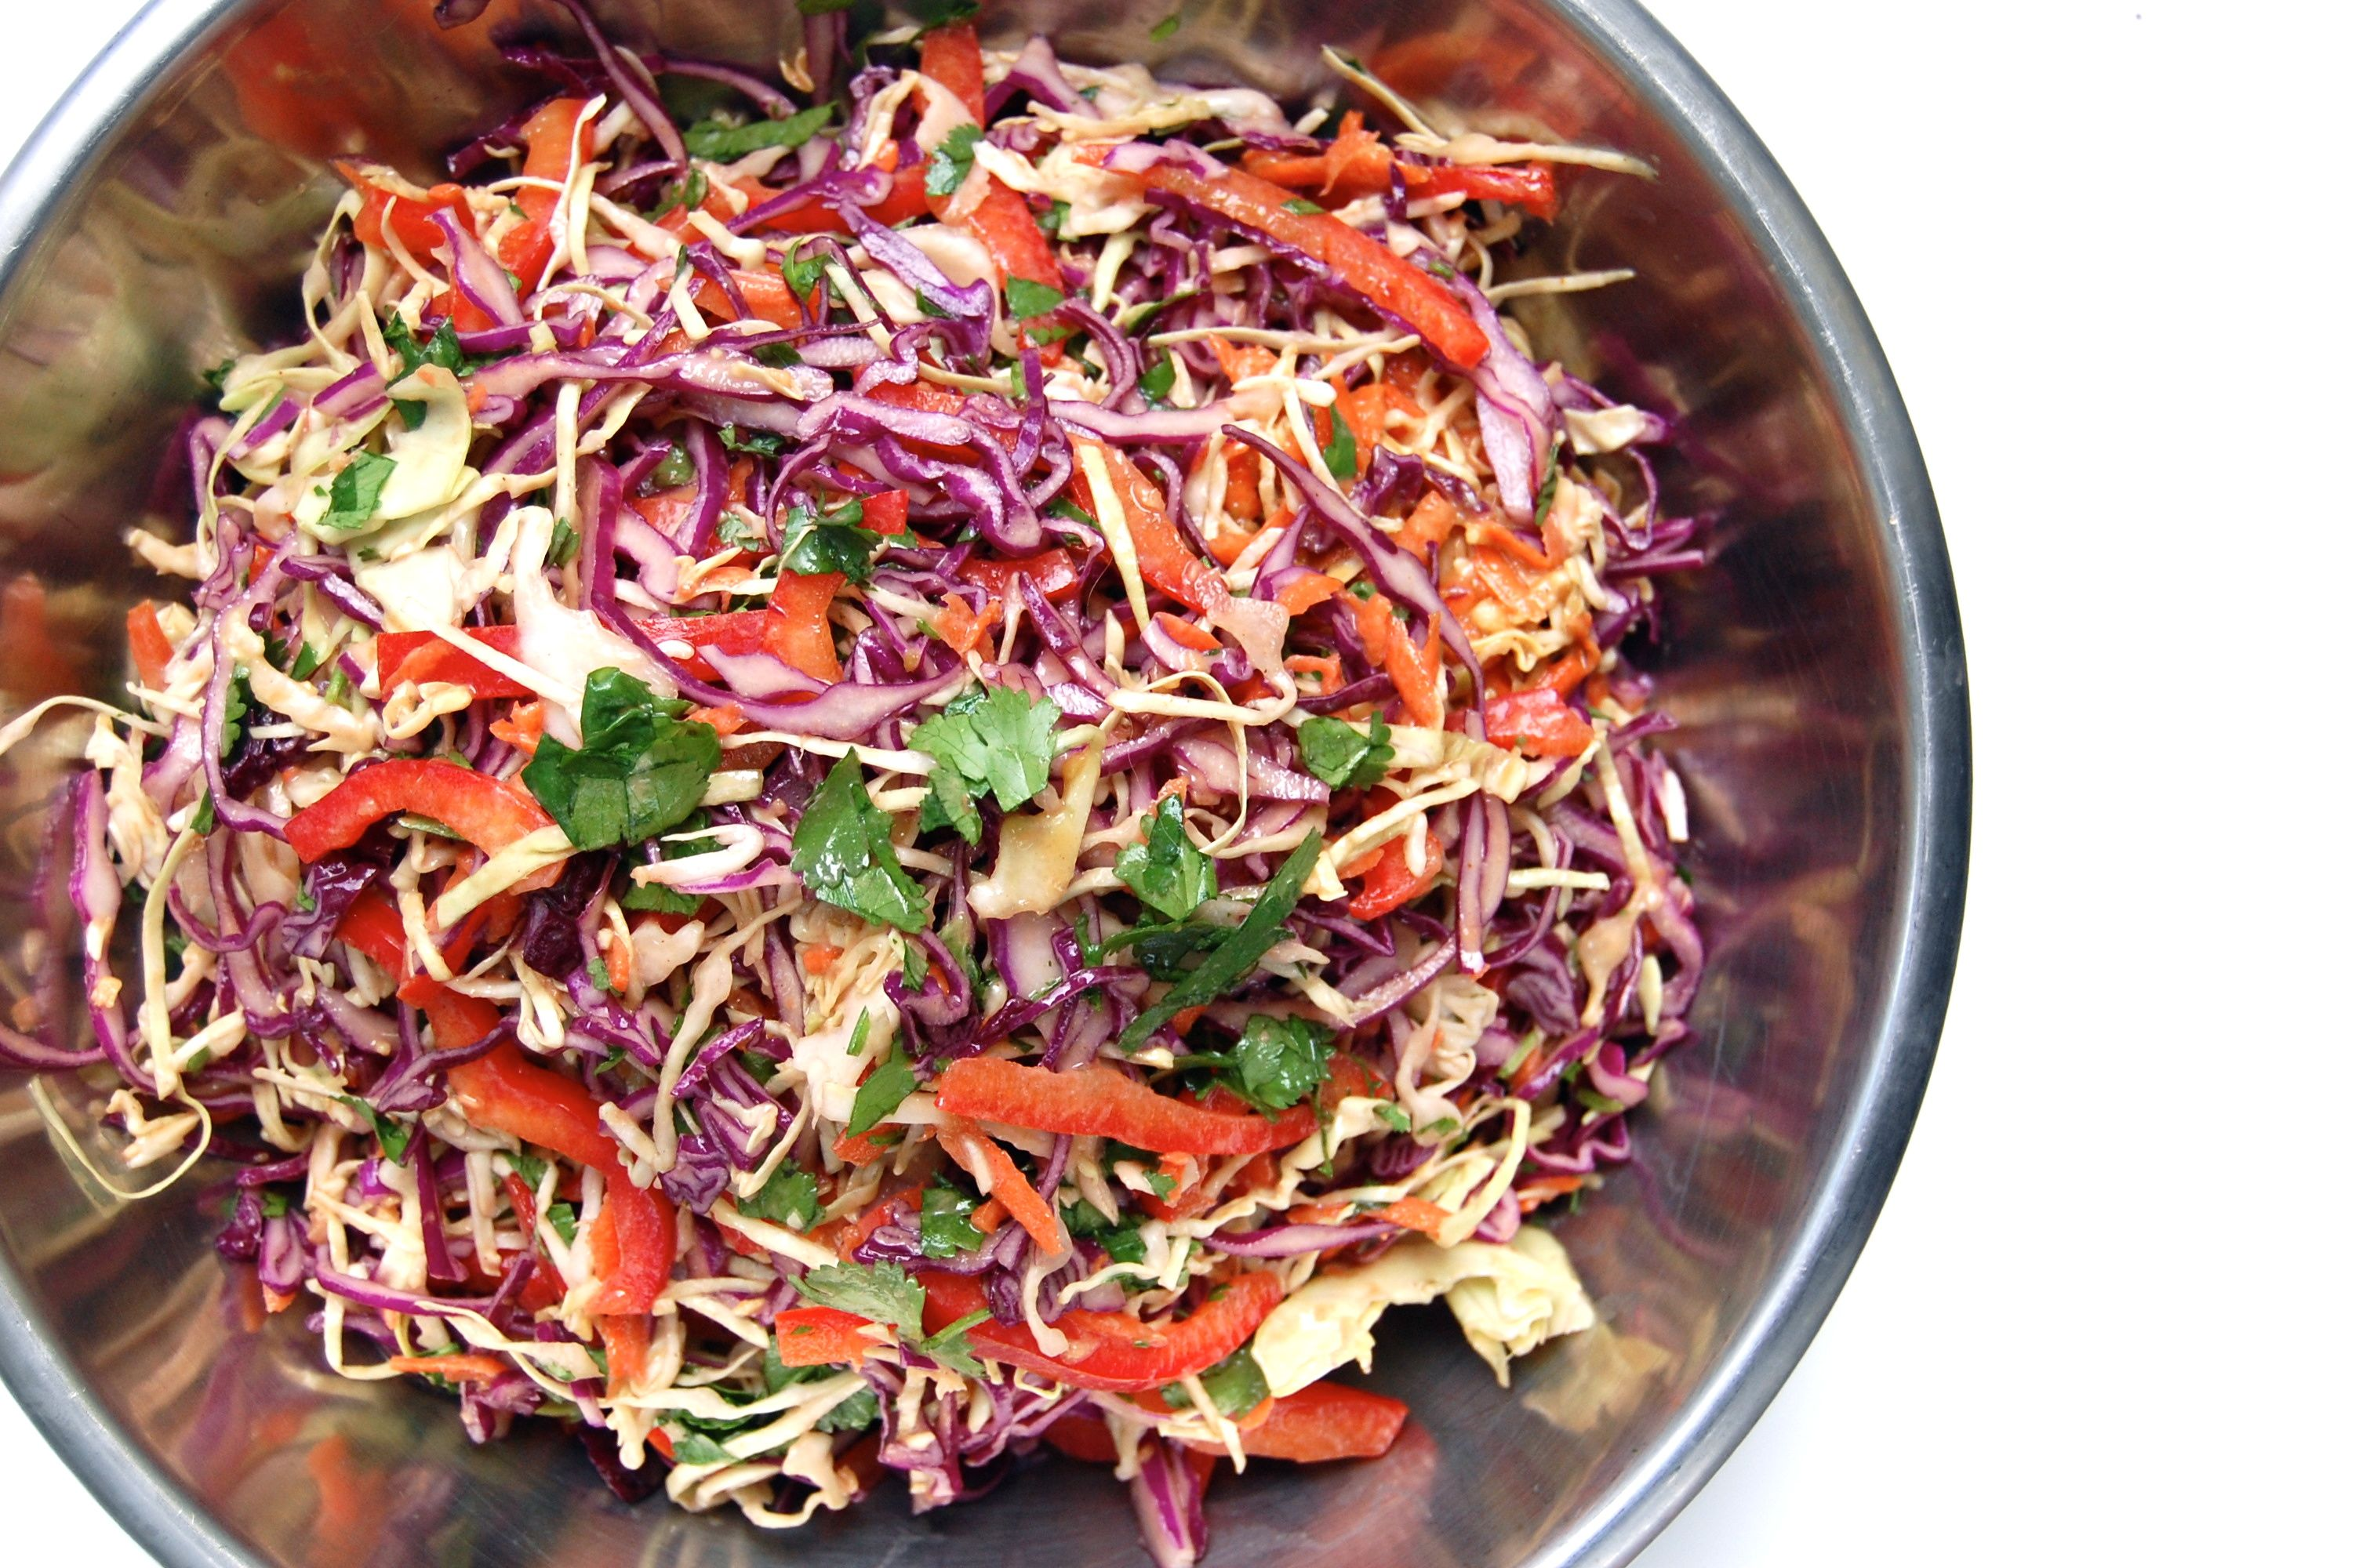 Carrot Salad With Cabbage And Peanuts Recipes — Dishmaps